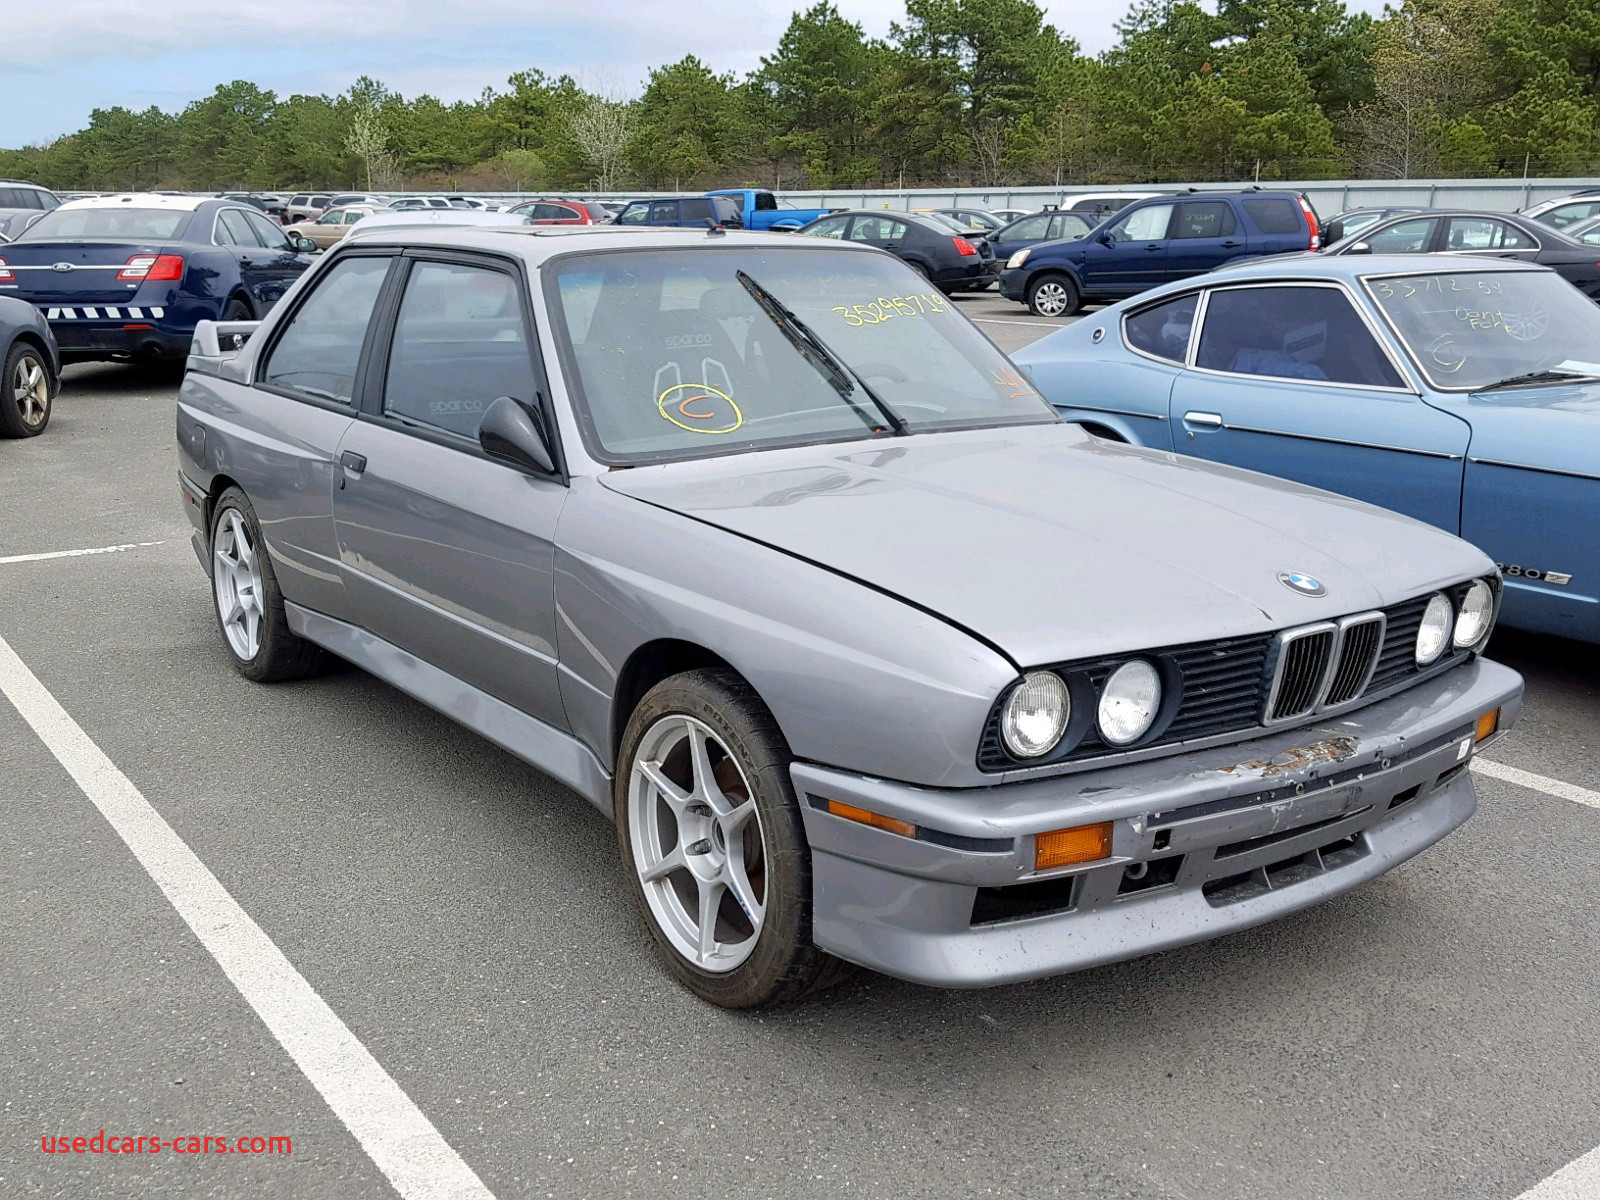 Bmw M3 1988 Awesome Bmw M3 1988 Wbsak0309j — Auto Auction Spot